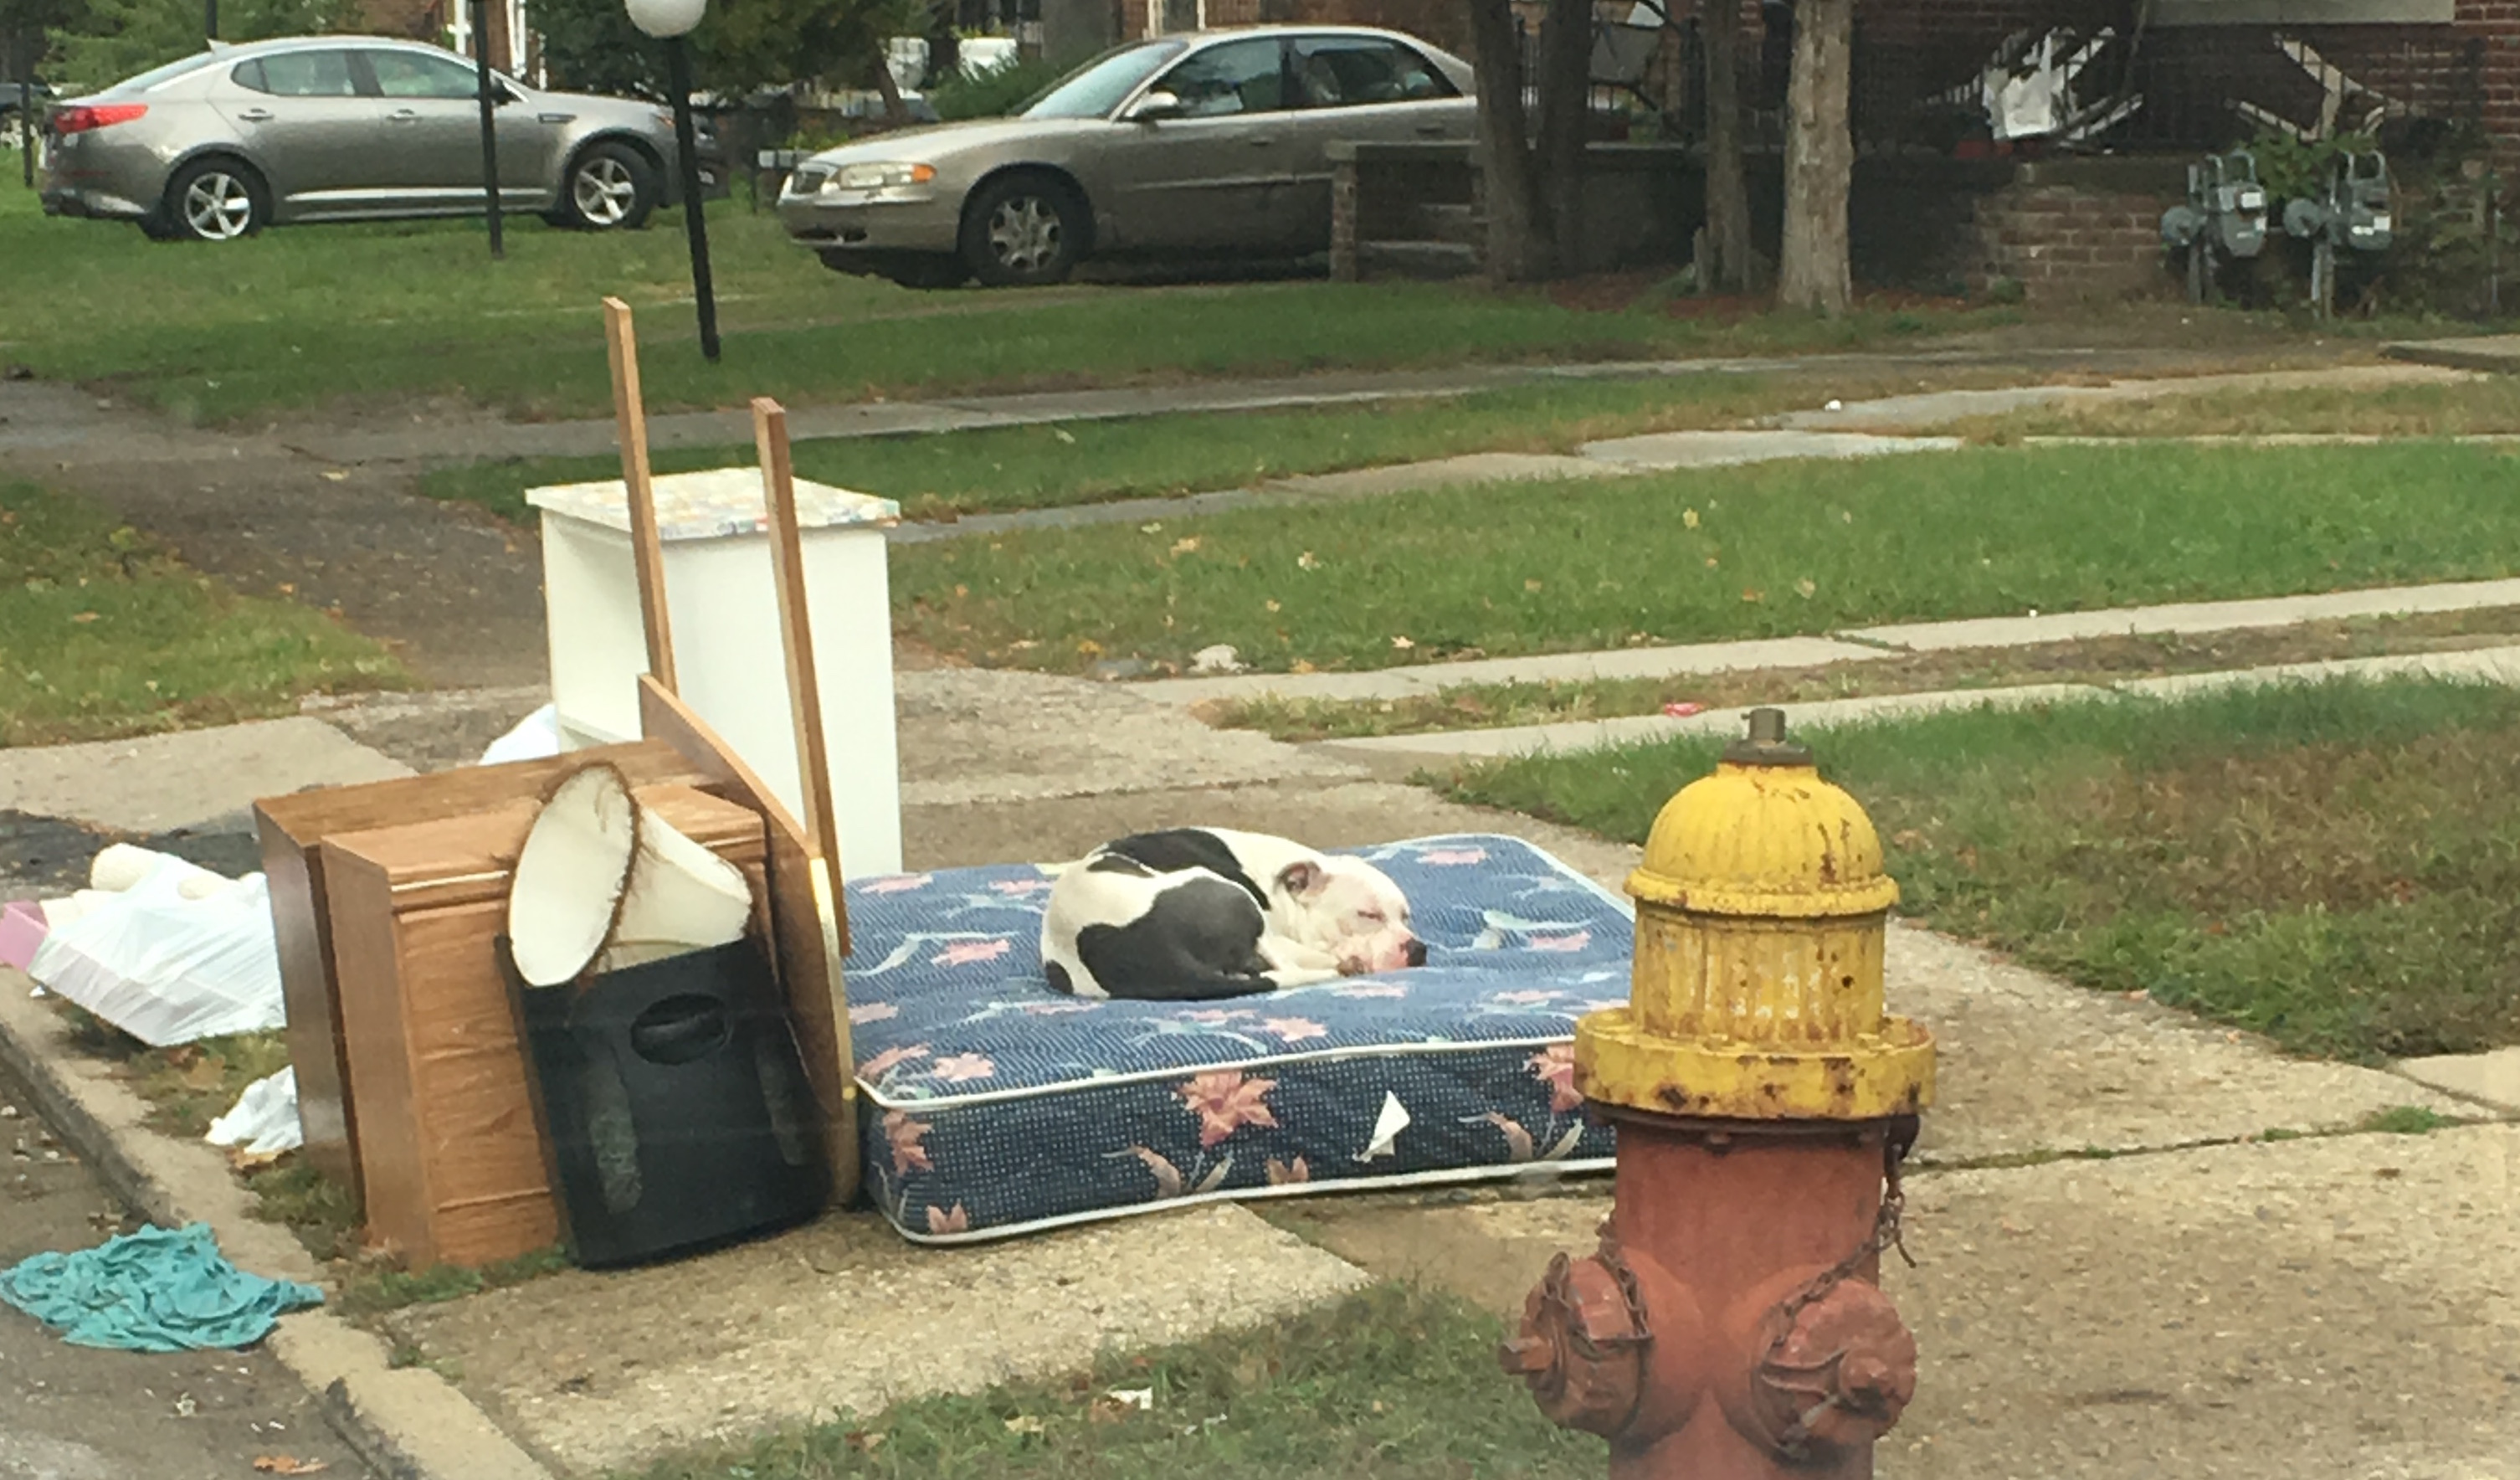 Boo the dog sits on a mattress outside the home where his owners abandoned him. He was rescued earlier this month by Dustin Oliver of the Detroit Youth and Dog Rescue.